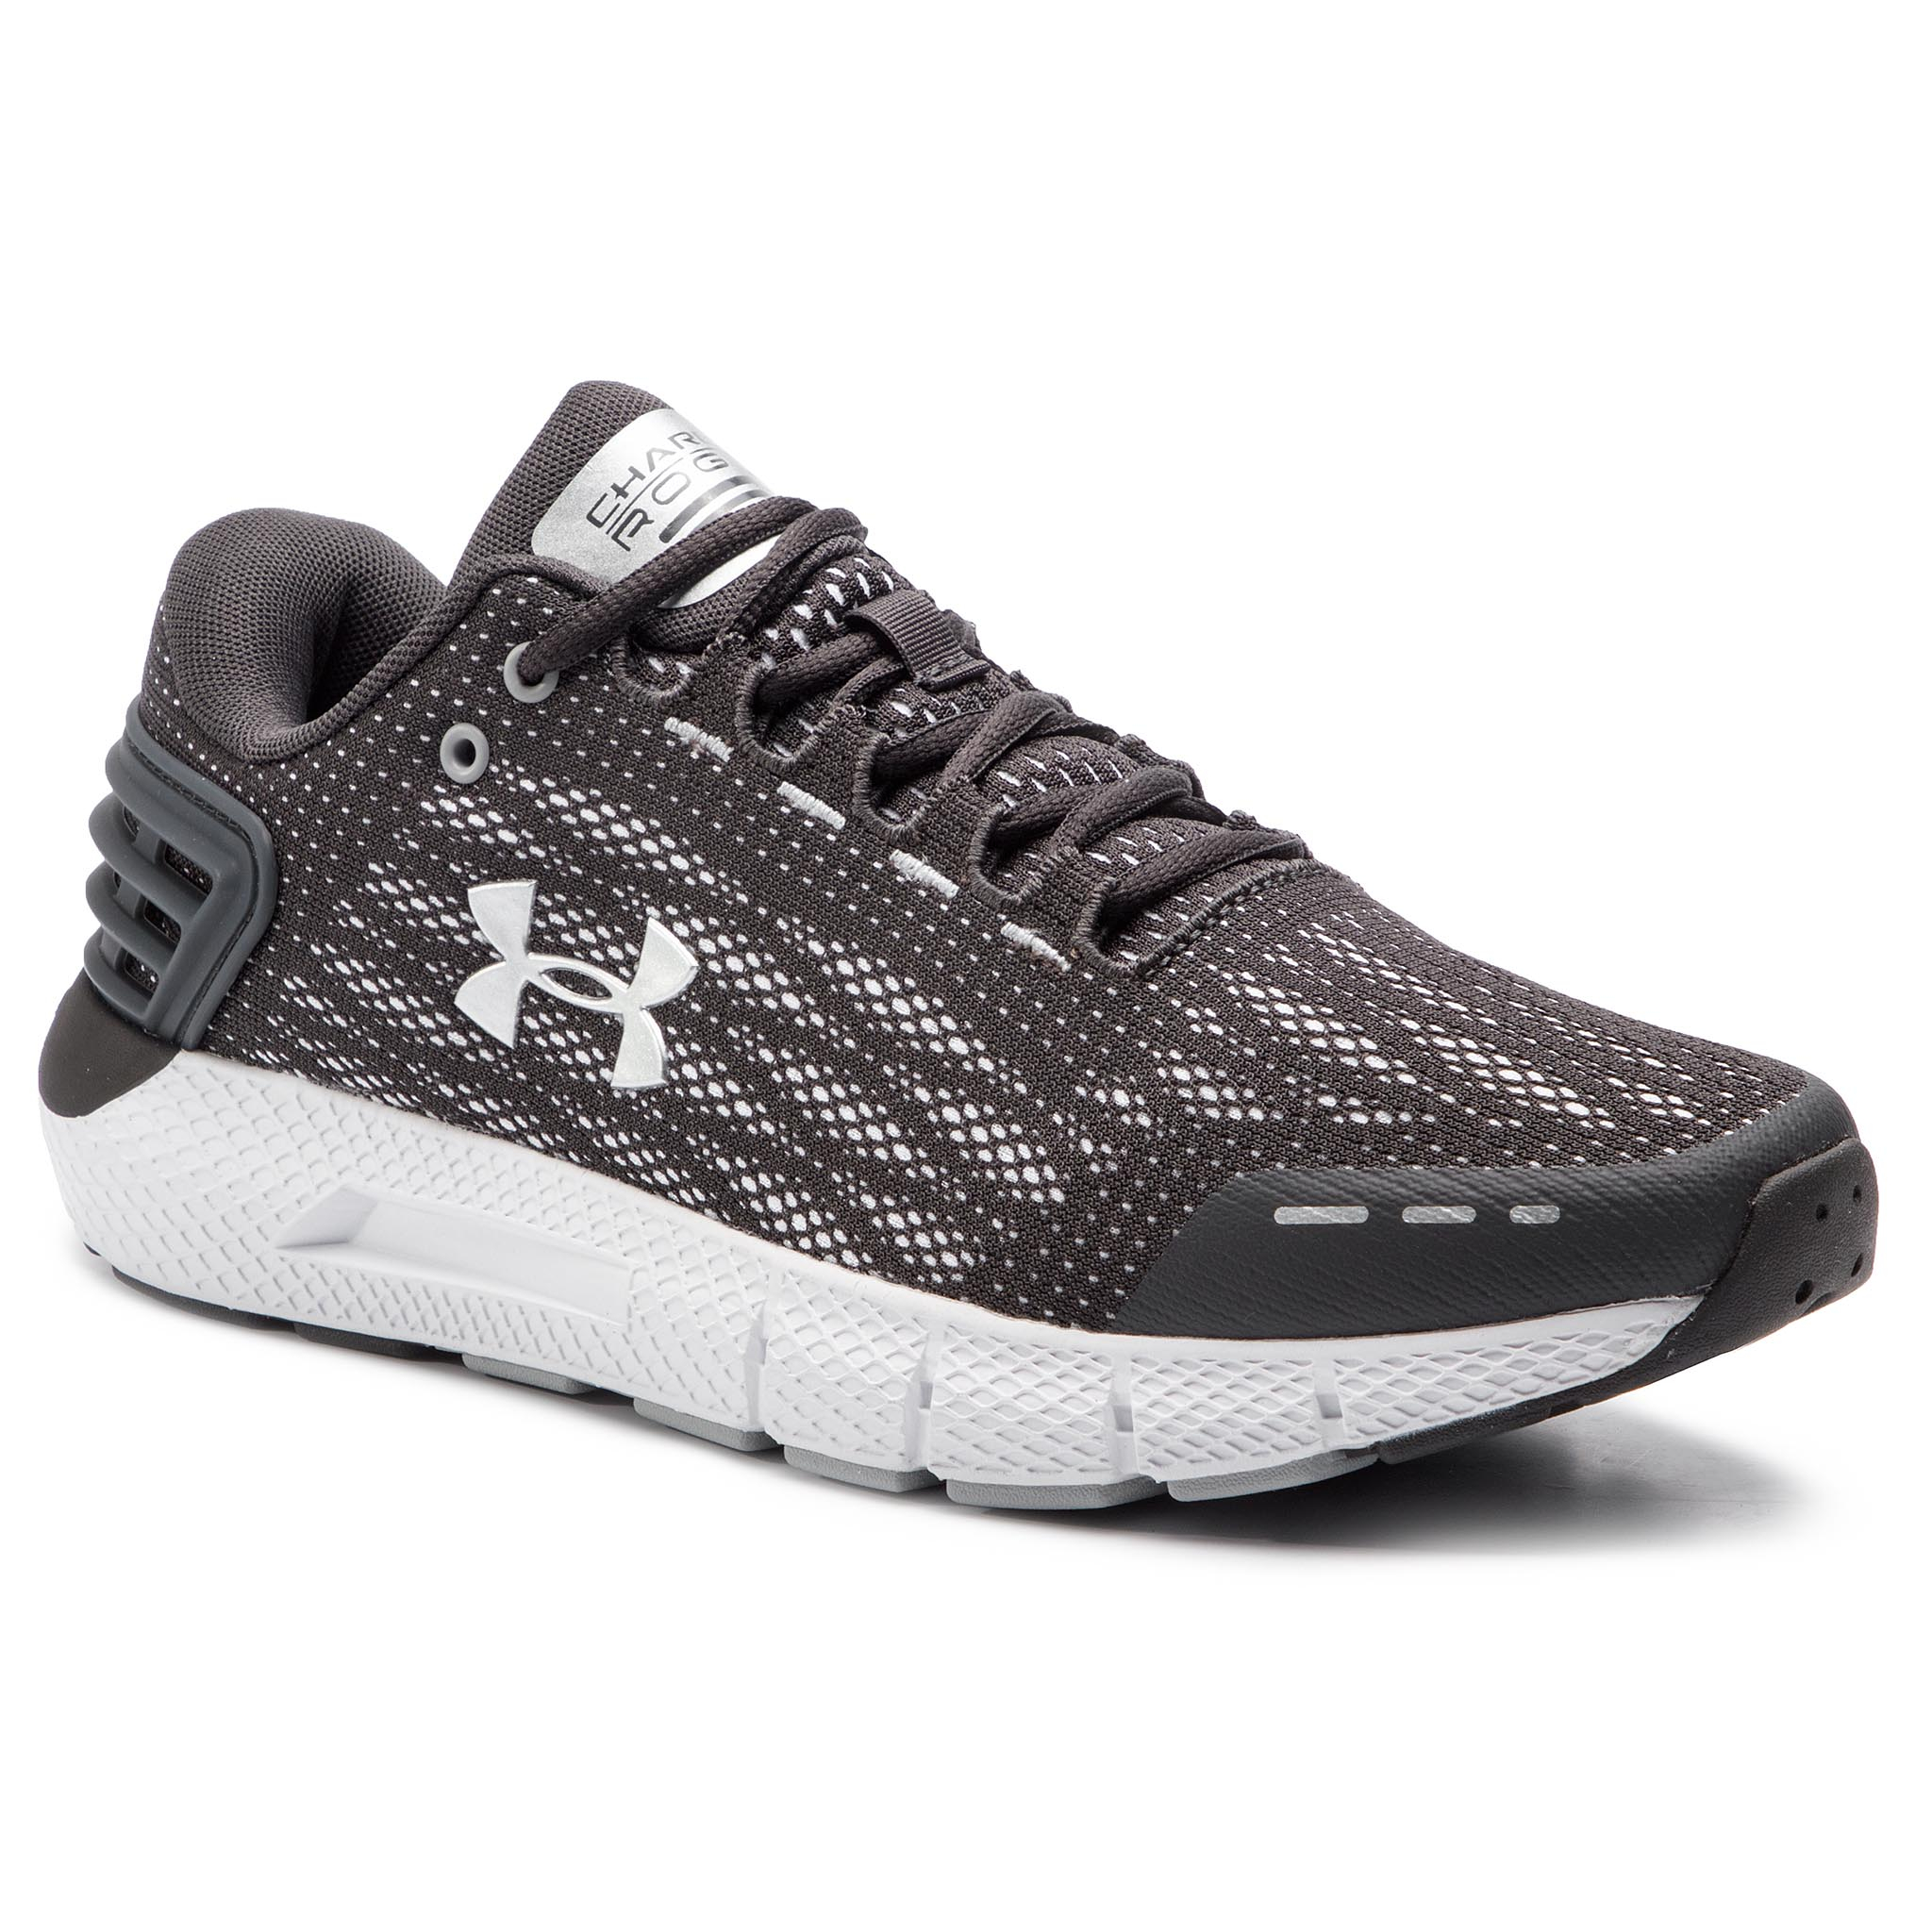 da0514cad2bbc Under Armour Ua Charged Rogue 3021225-100 - Glami.cz